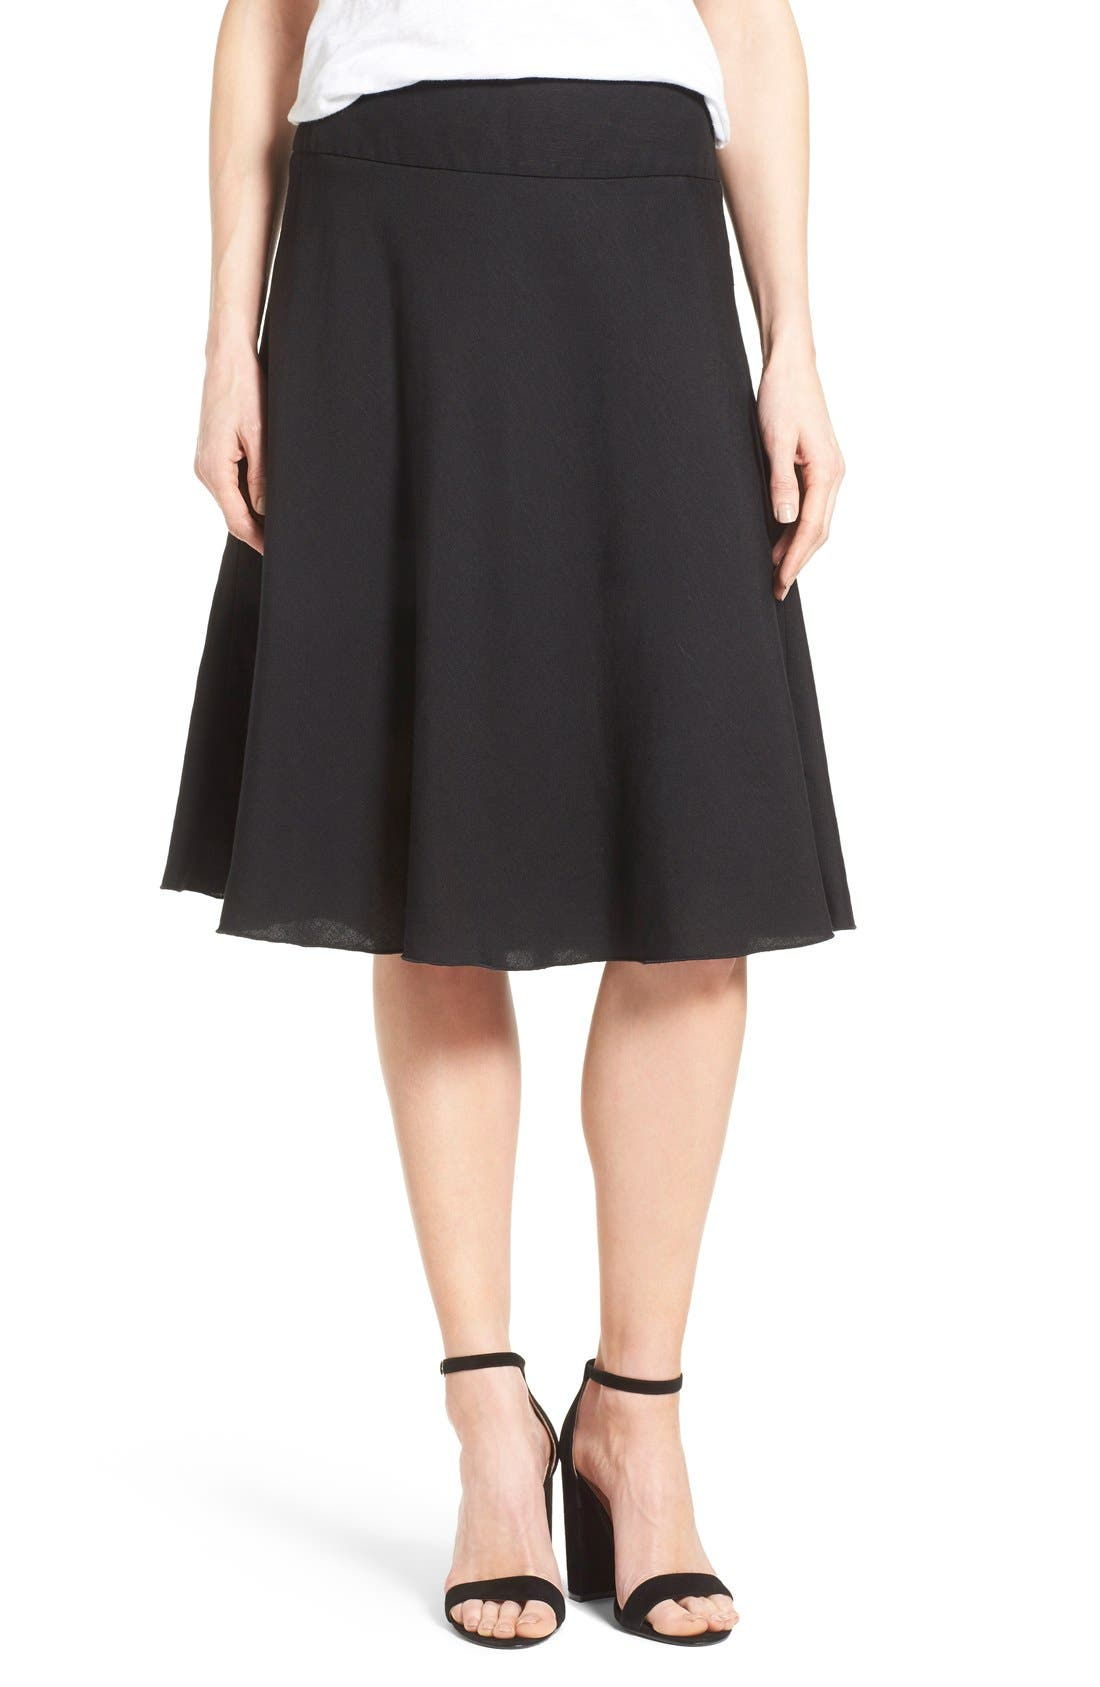 Alternate Image 1 Selected - NIC+ZOE Summer Fling Linen Blend Skirt (Regular & Petite)